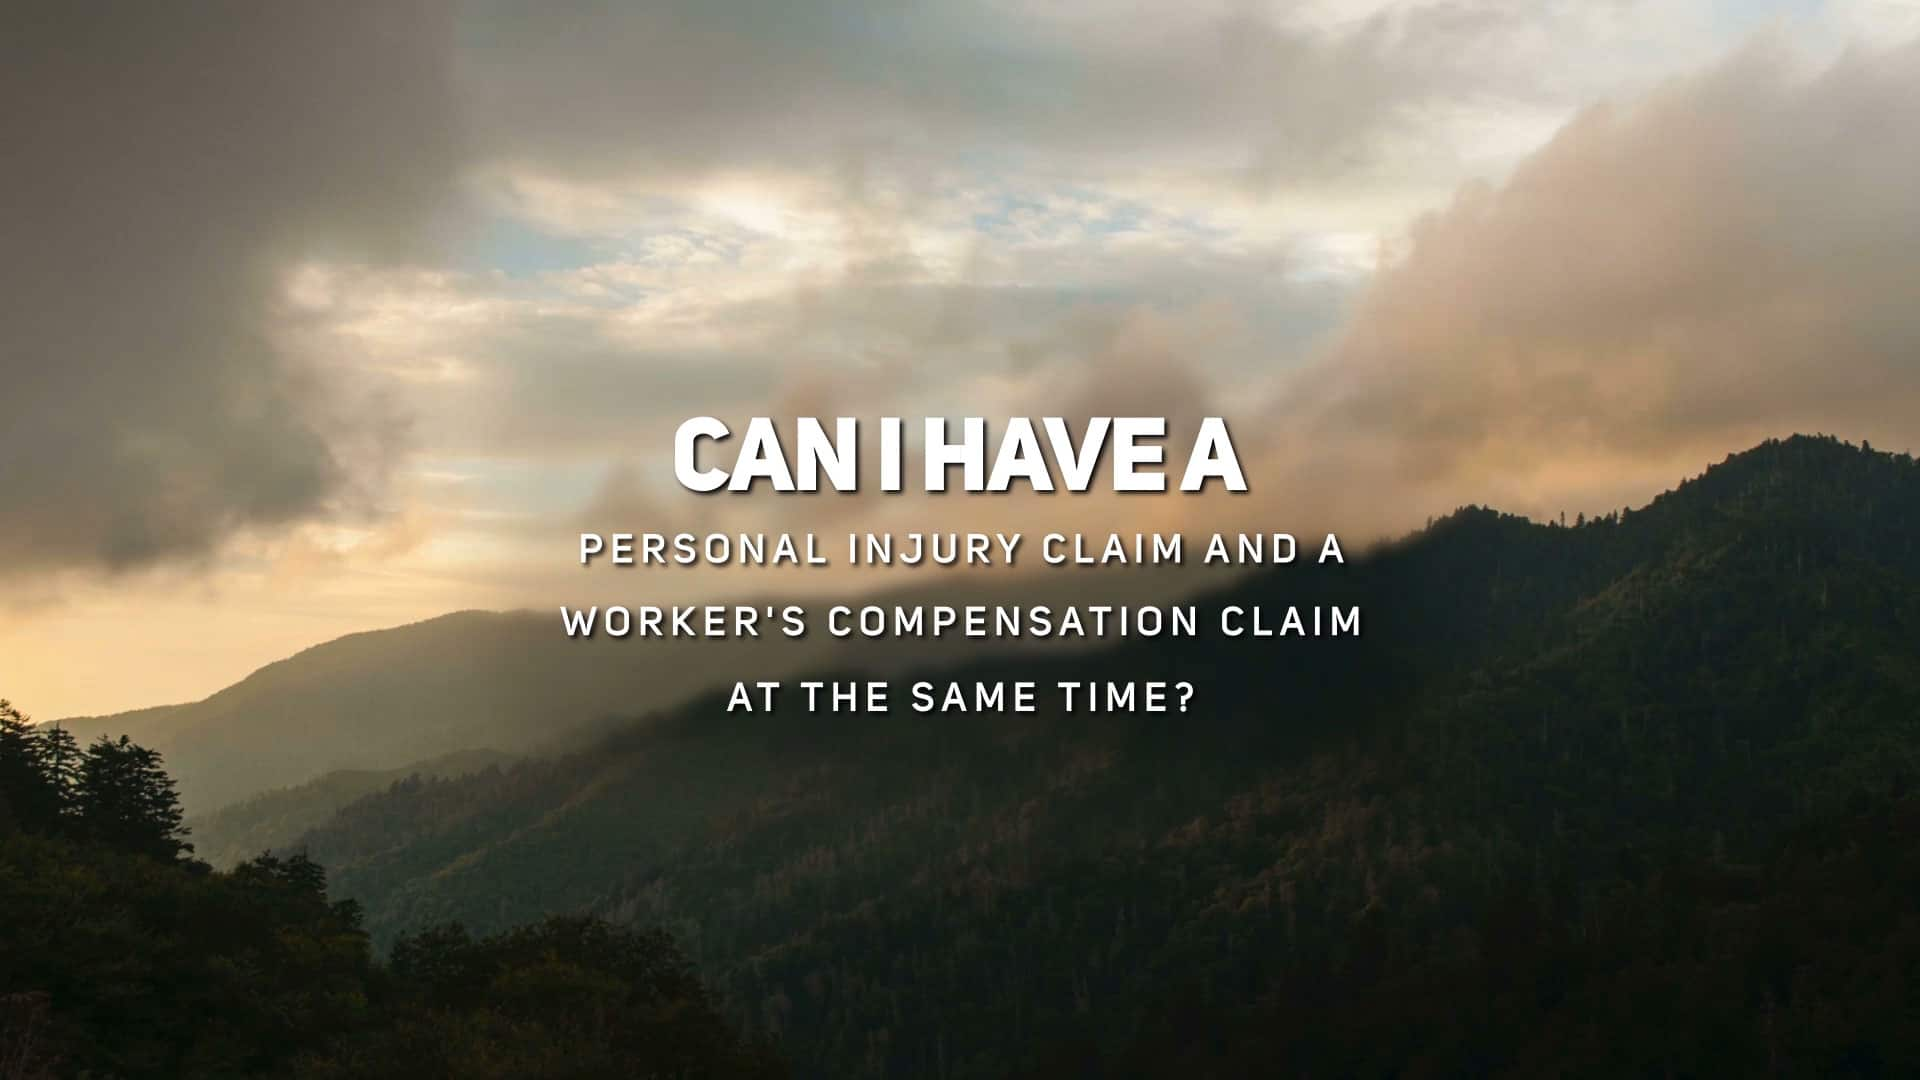 Can I Have A Personal Injury Claim and a Workers Compensation Claim at the Same Time